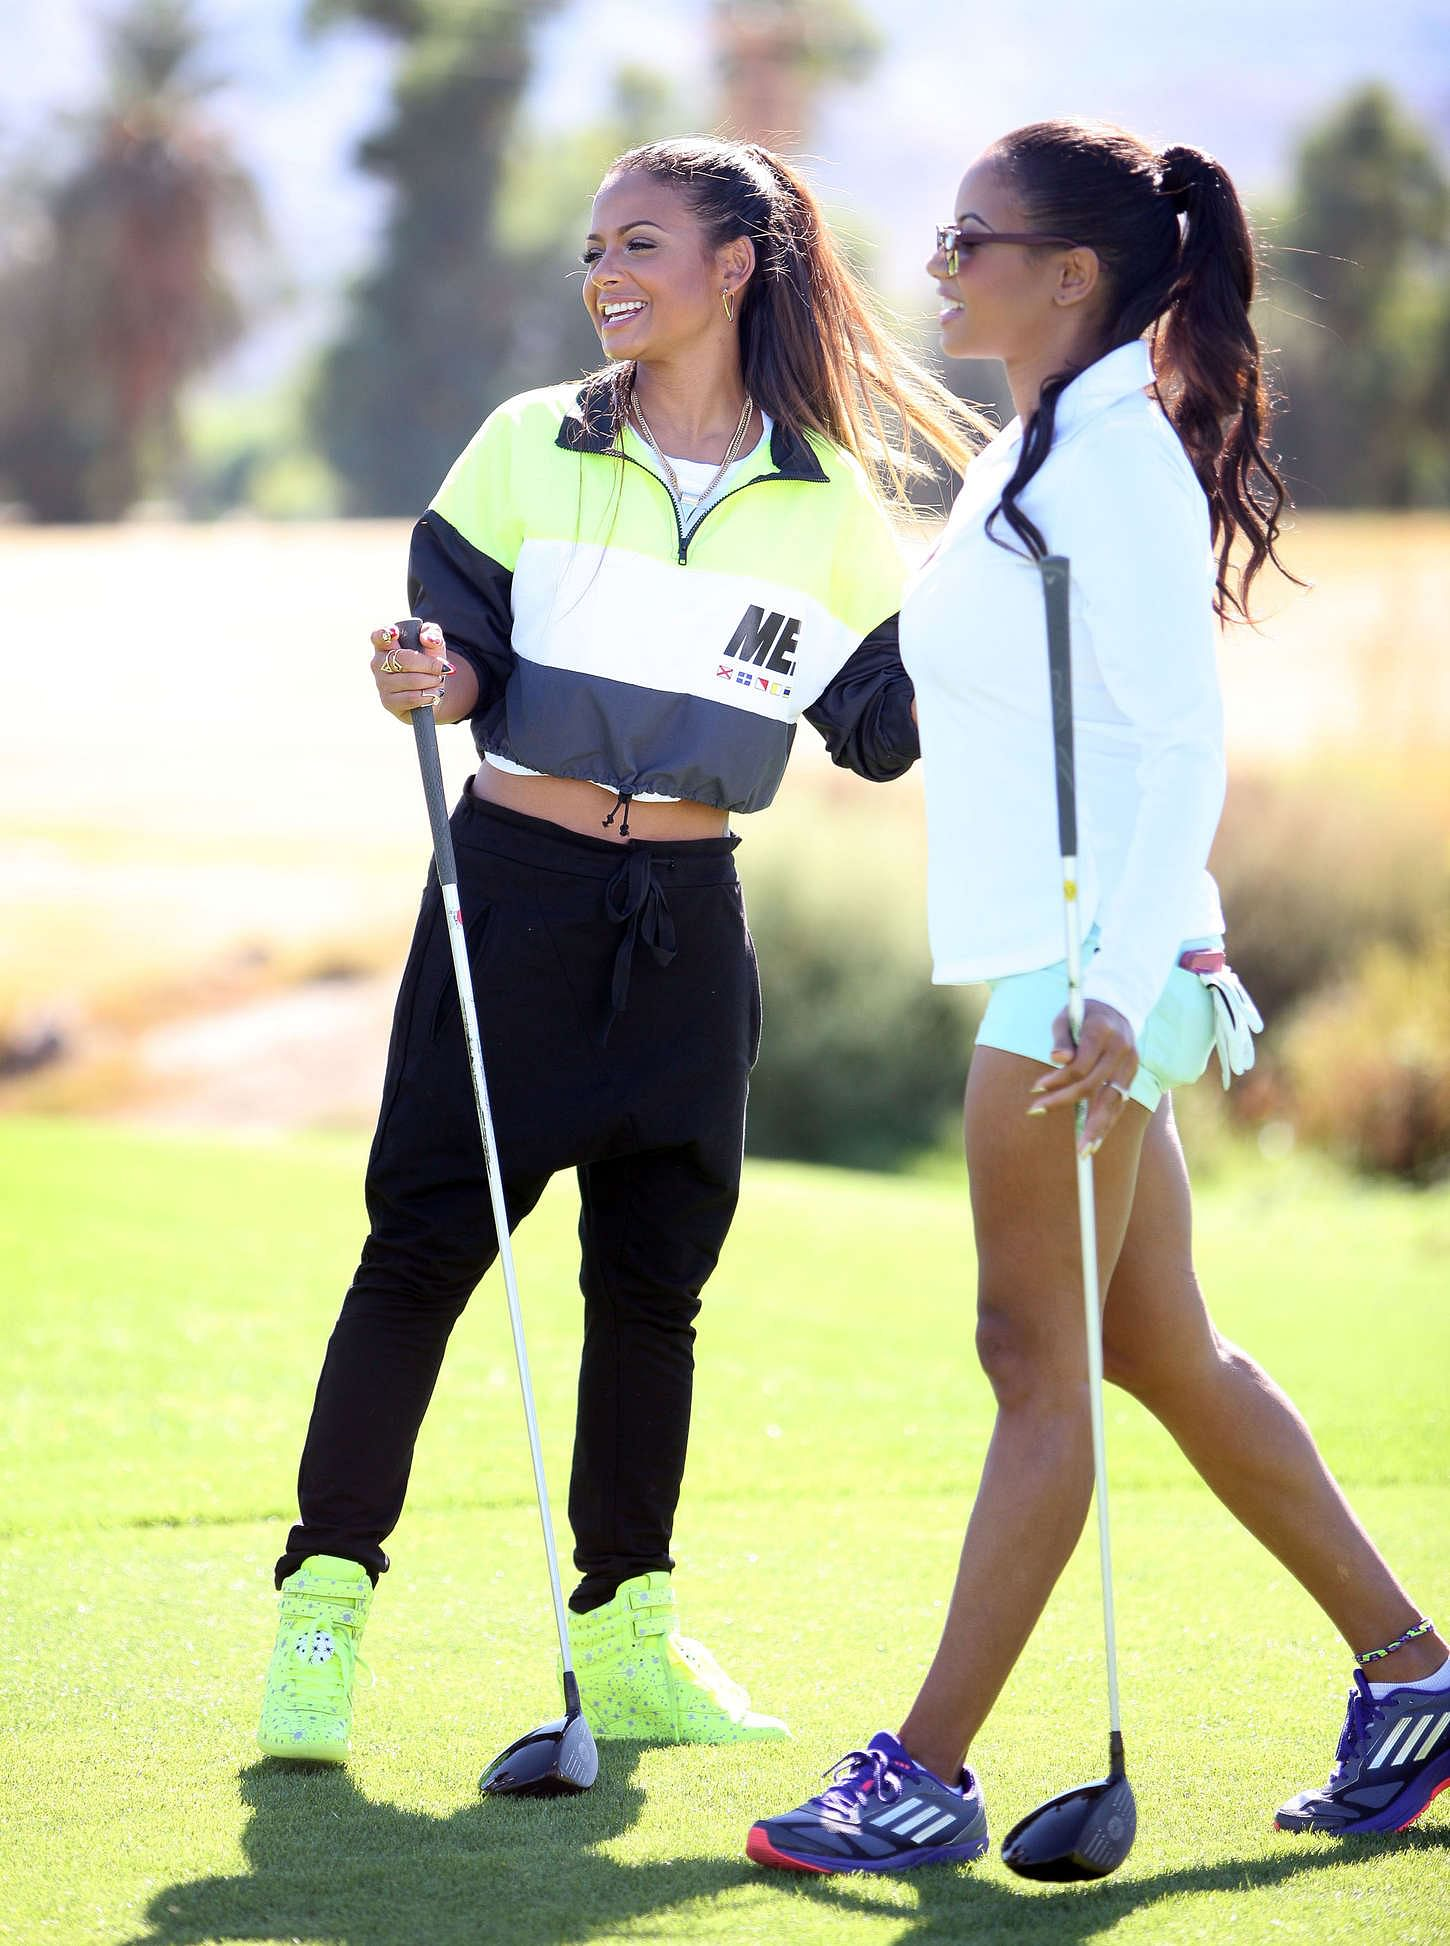 How ladies can stay fashionable on the golf course